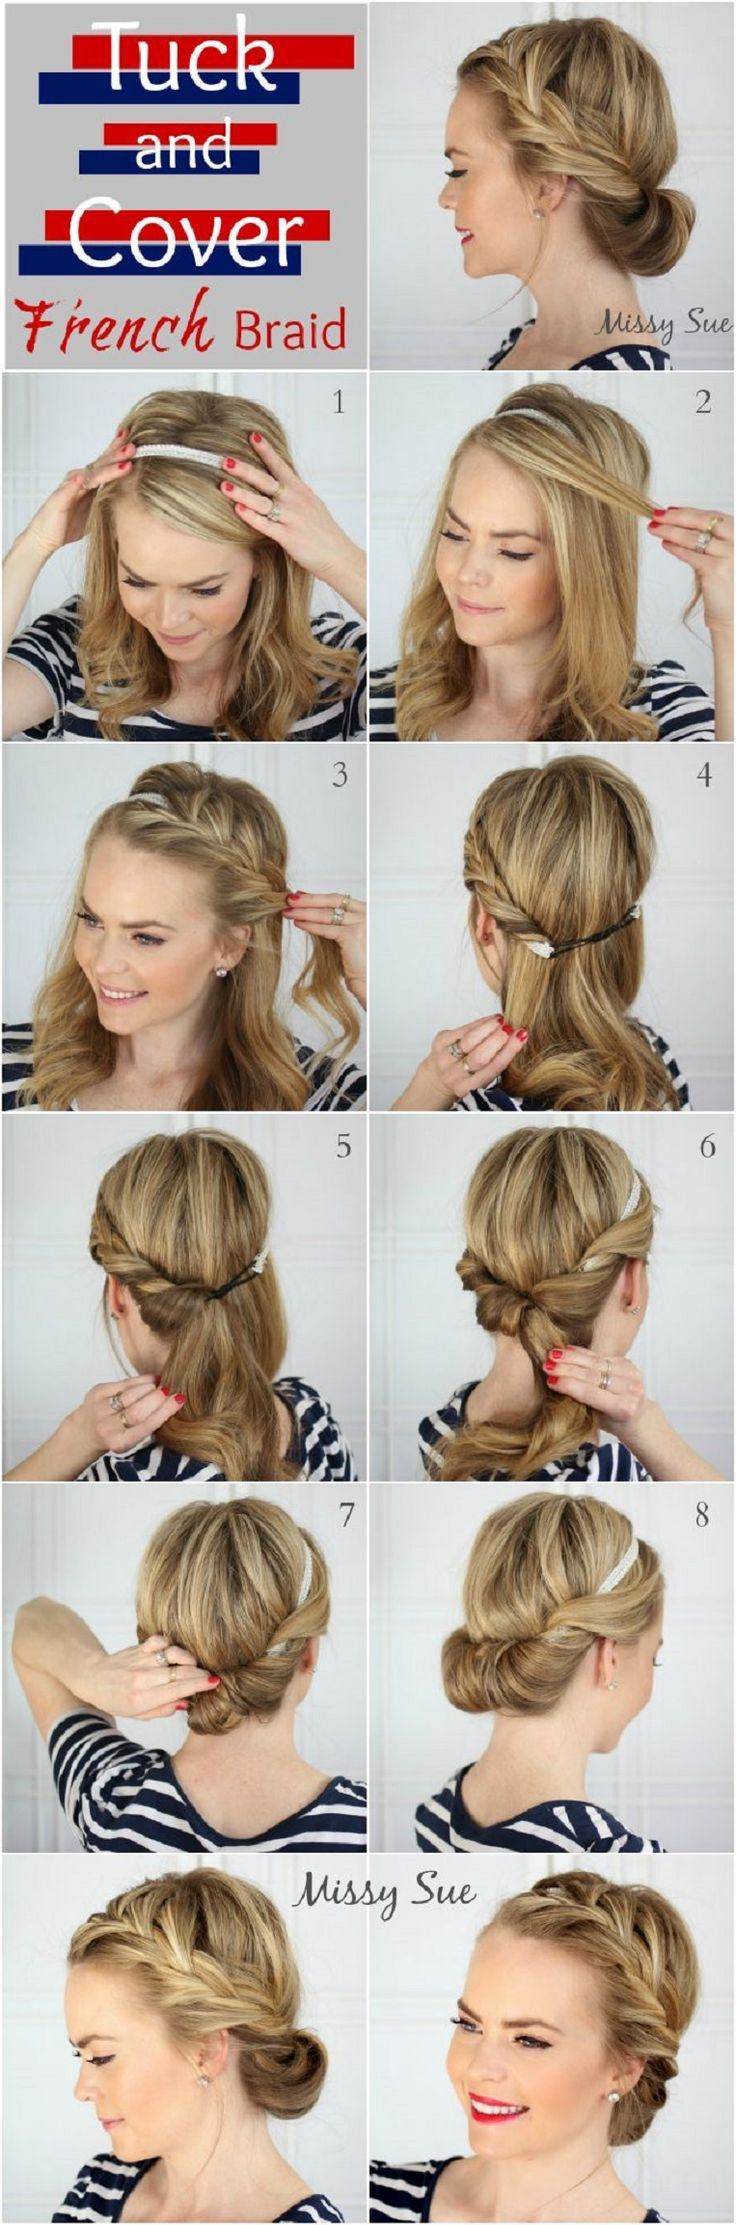 Updos for long hair that take 10 minutes to style